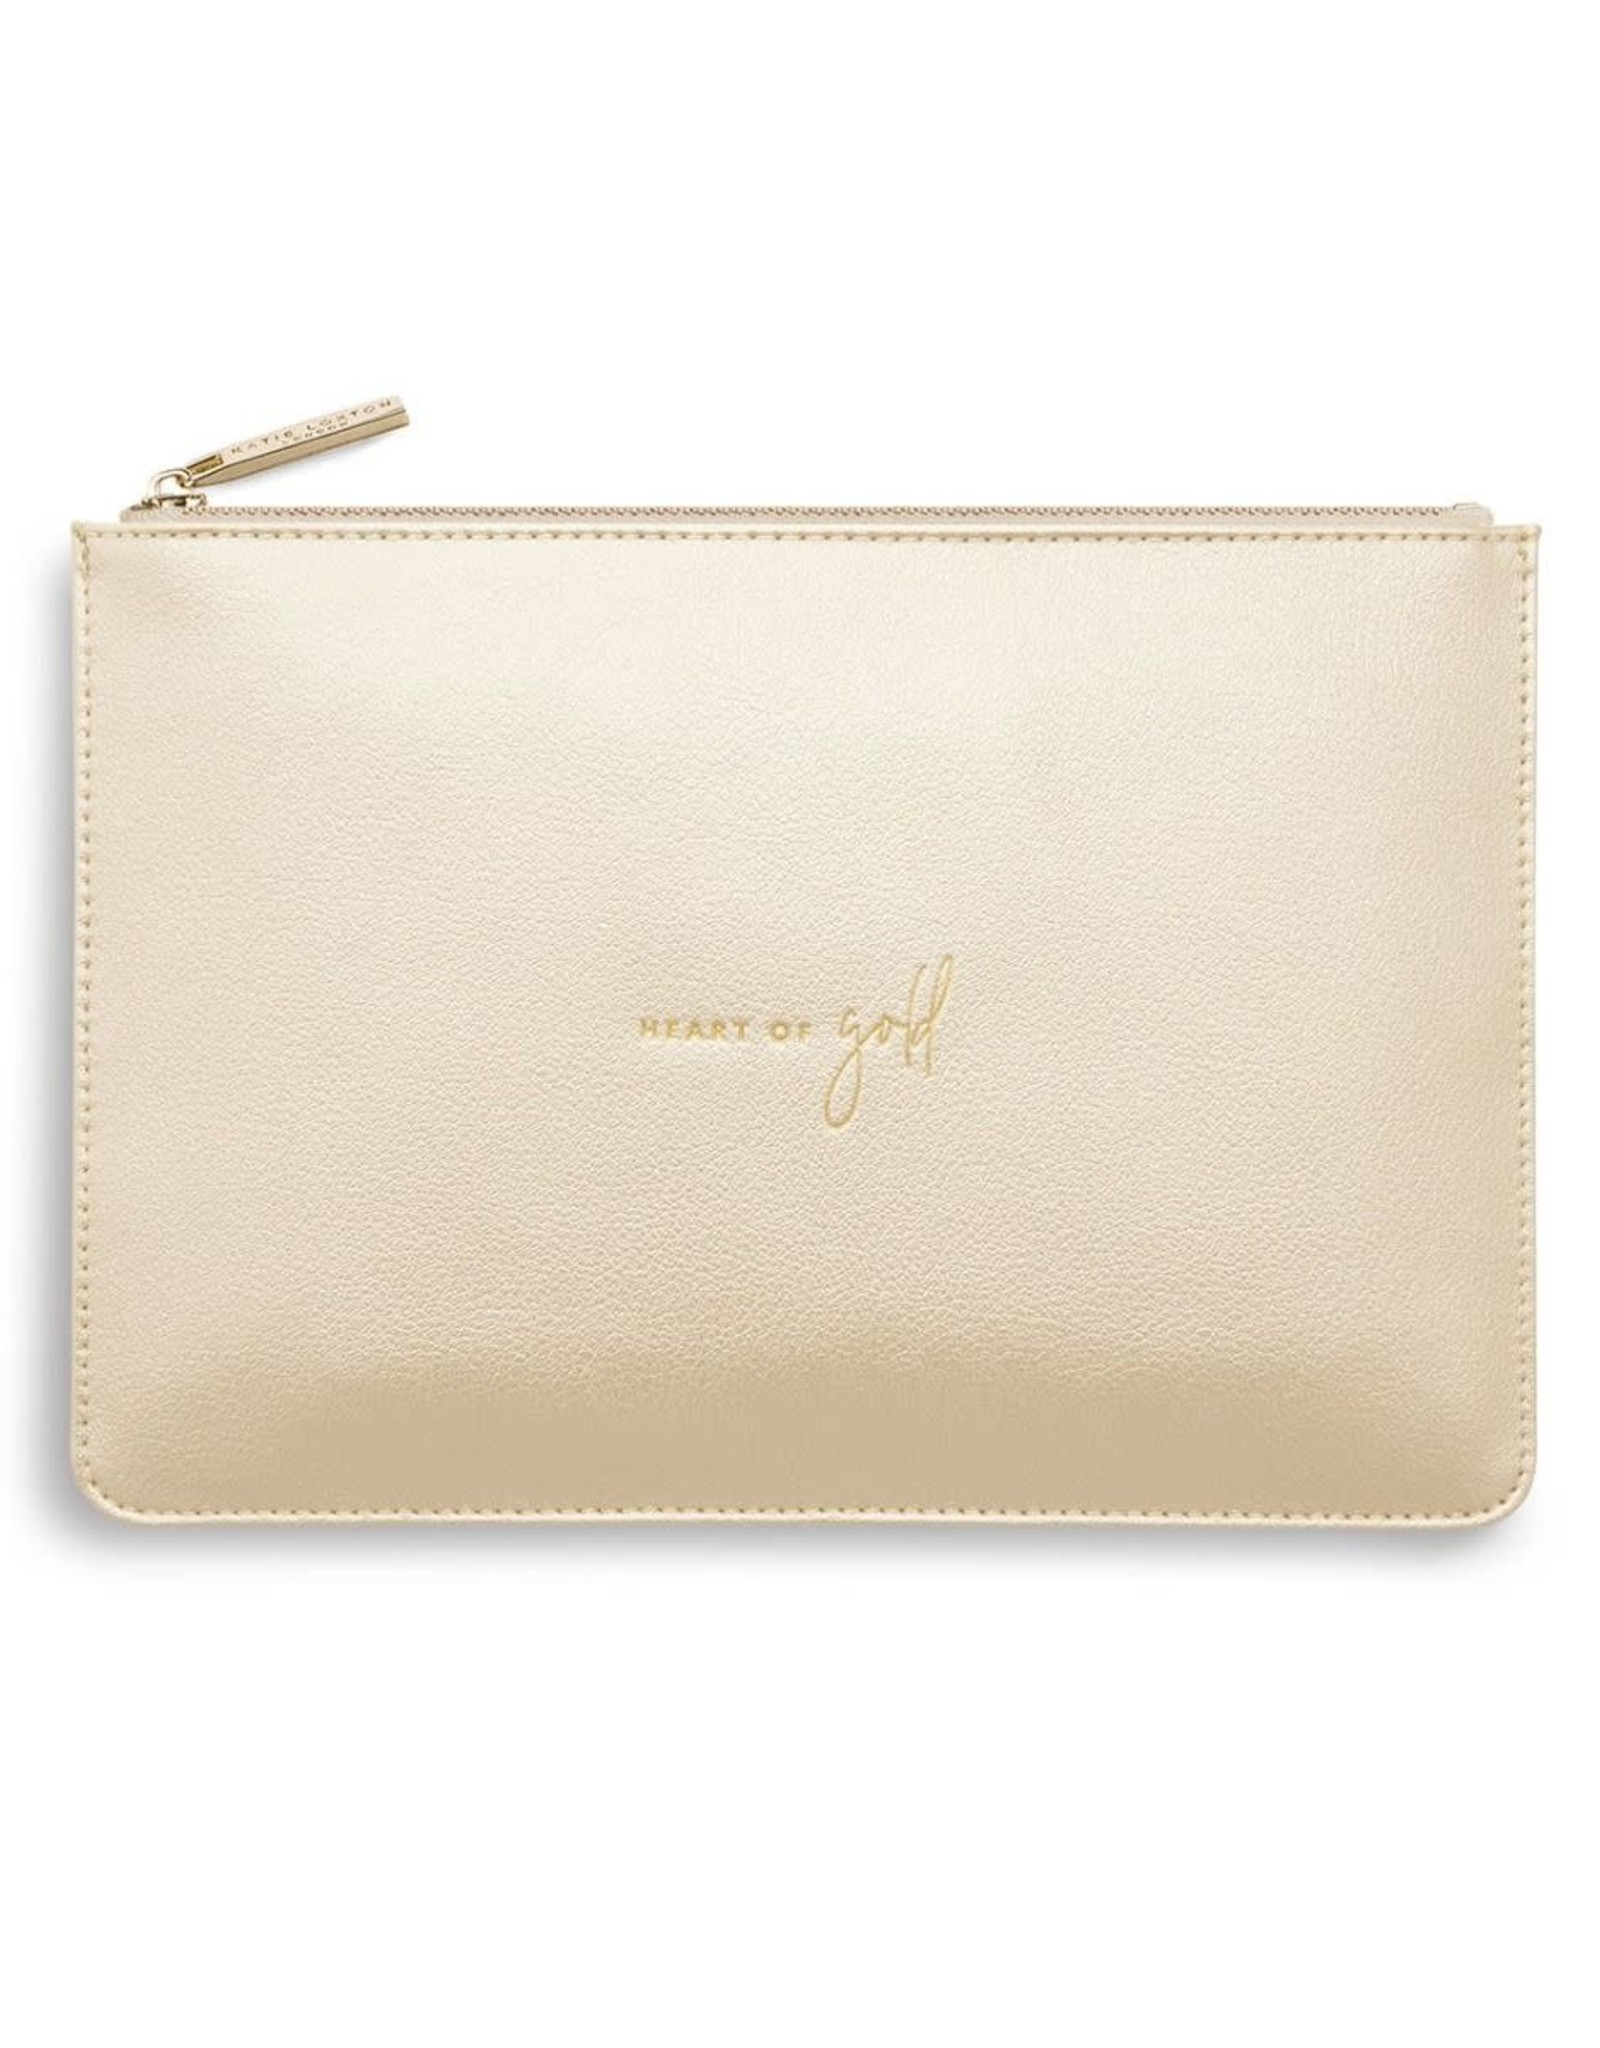 Katie Loxton Perfect Pouch - HEART OF GOLD - Champagne